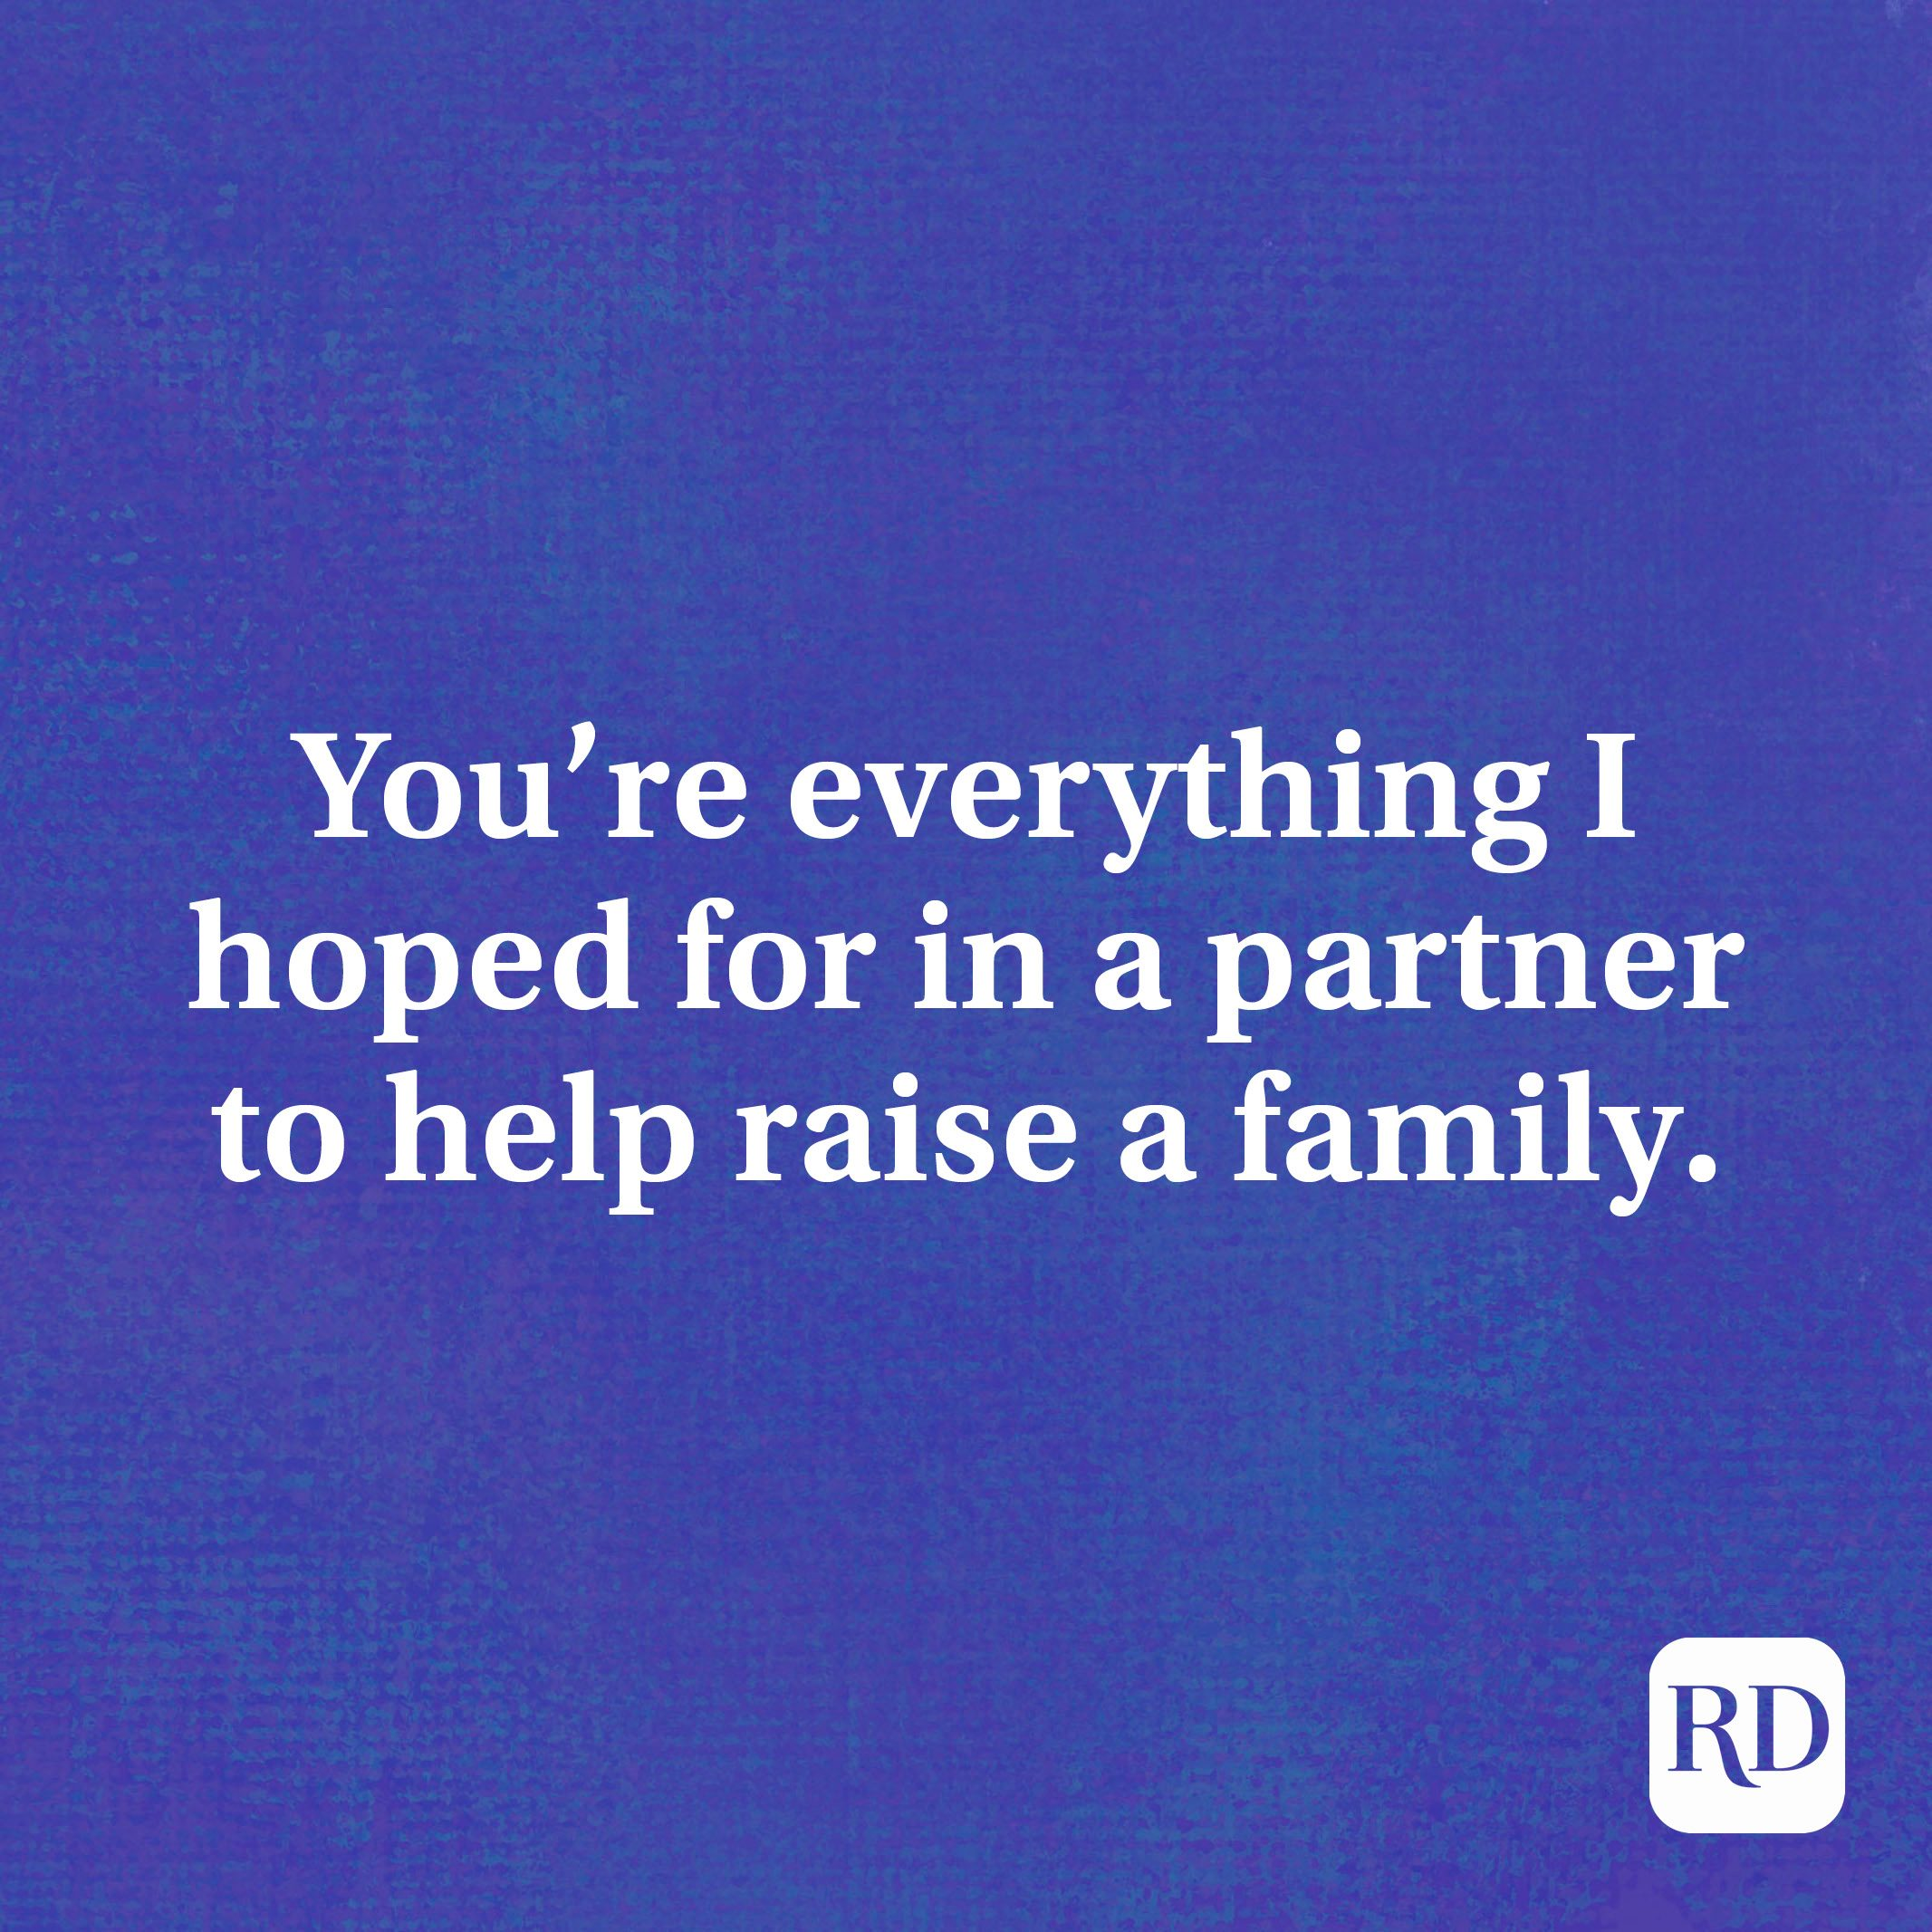 You're everything I hoped for in a partner to help raise a family.